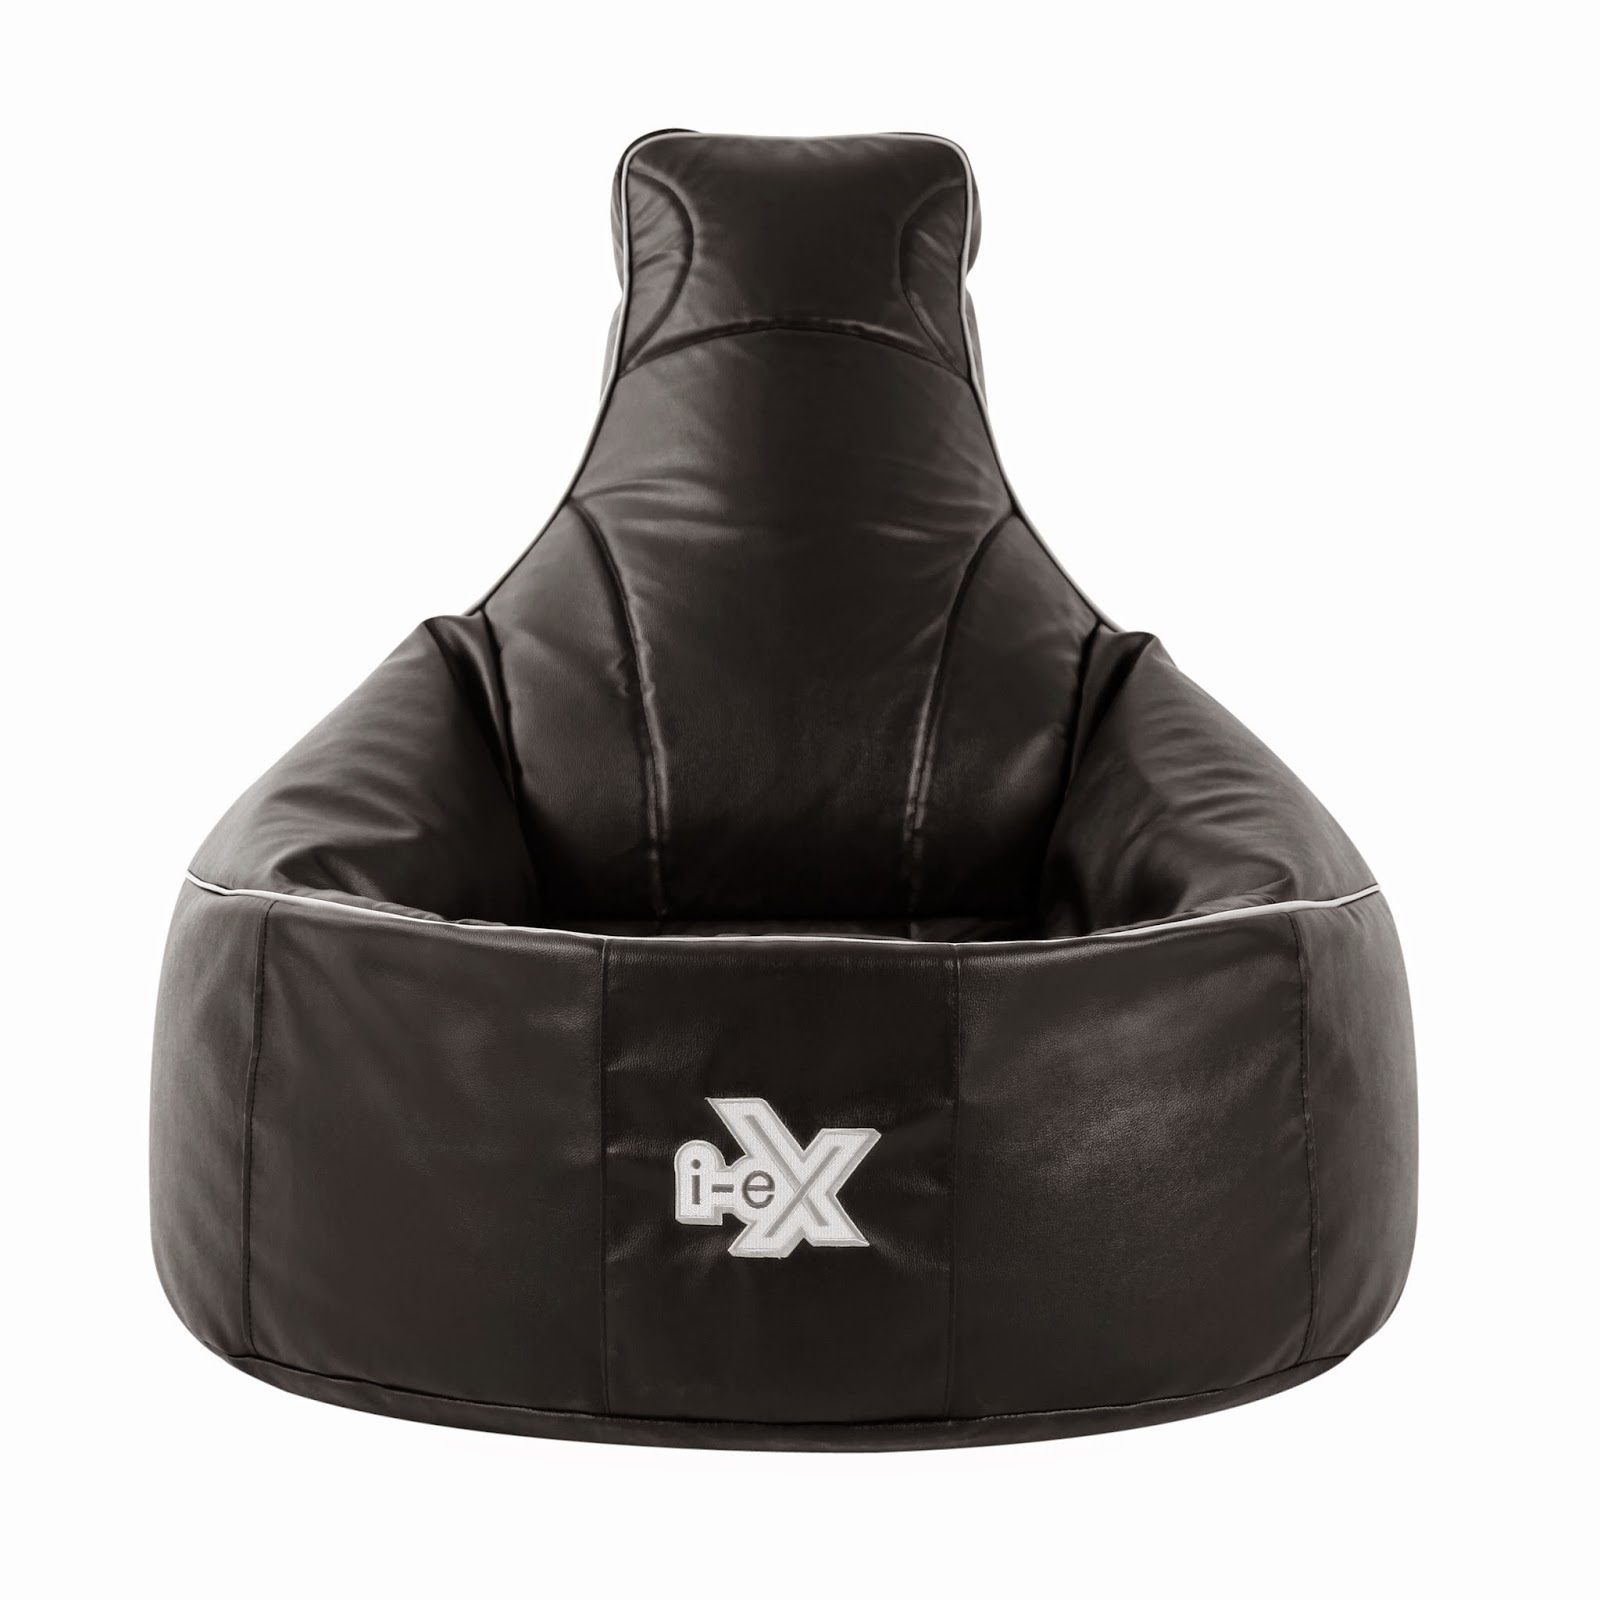 Where Can I Buy A Bean Bag Chair Review I Ex Bean Bag Gaming Chair The Test Pit